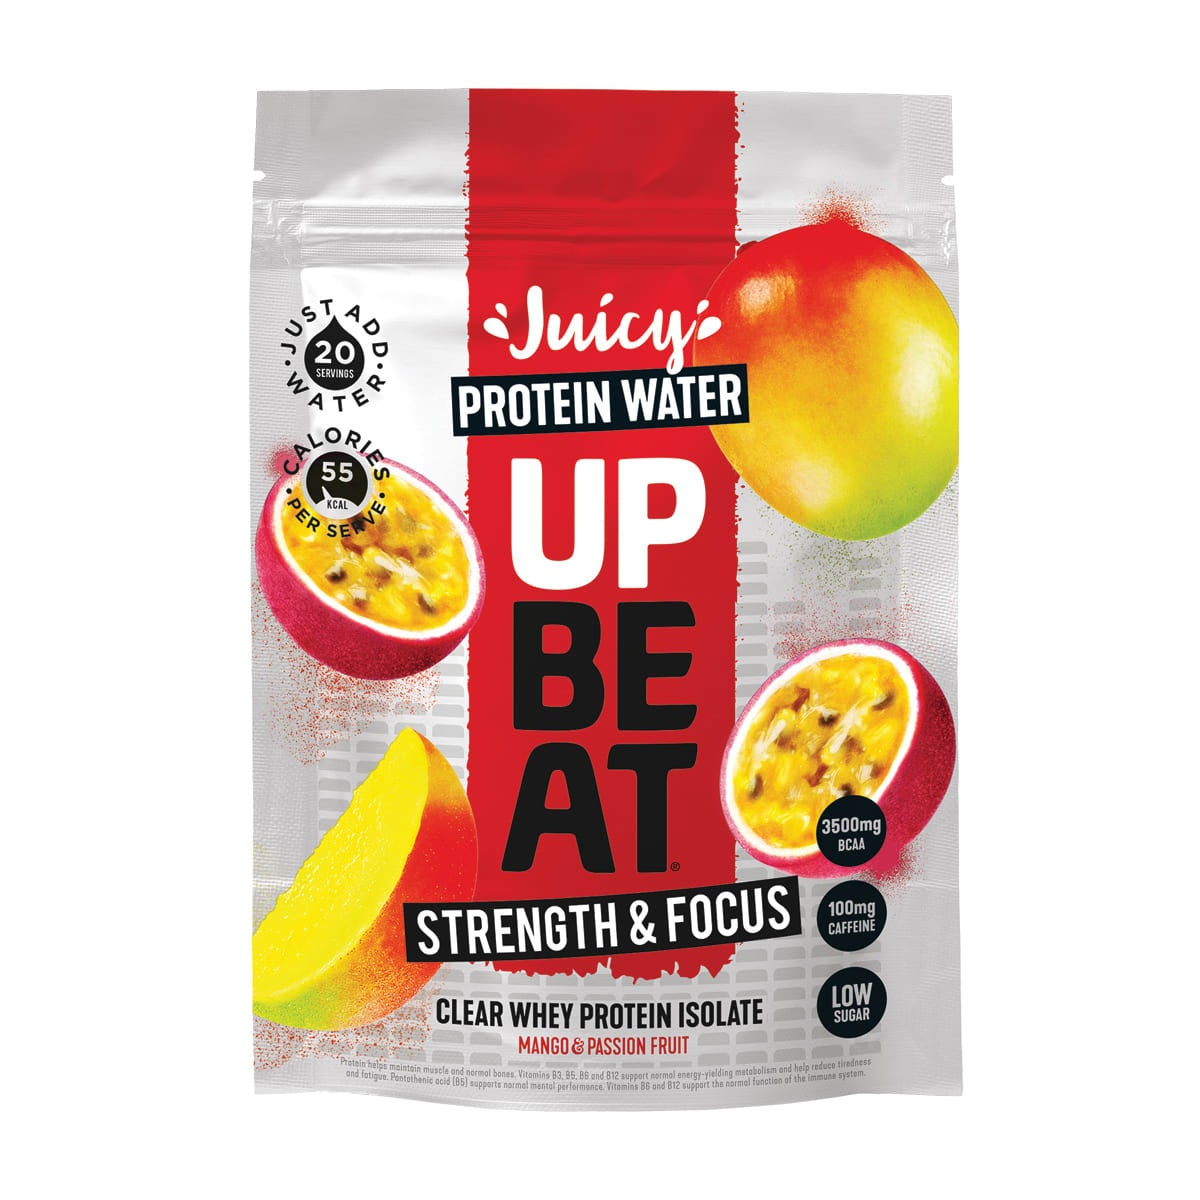 Upbeat - Strength & Focus Pouch, 20 servings, protein drink, mango and passionfruit flavour, just add water, added vitamins, gluten free, suitable for vegetarians